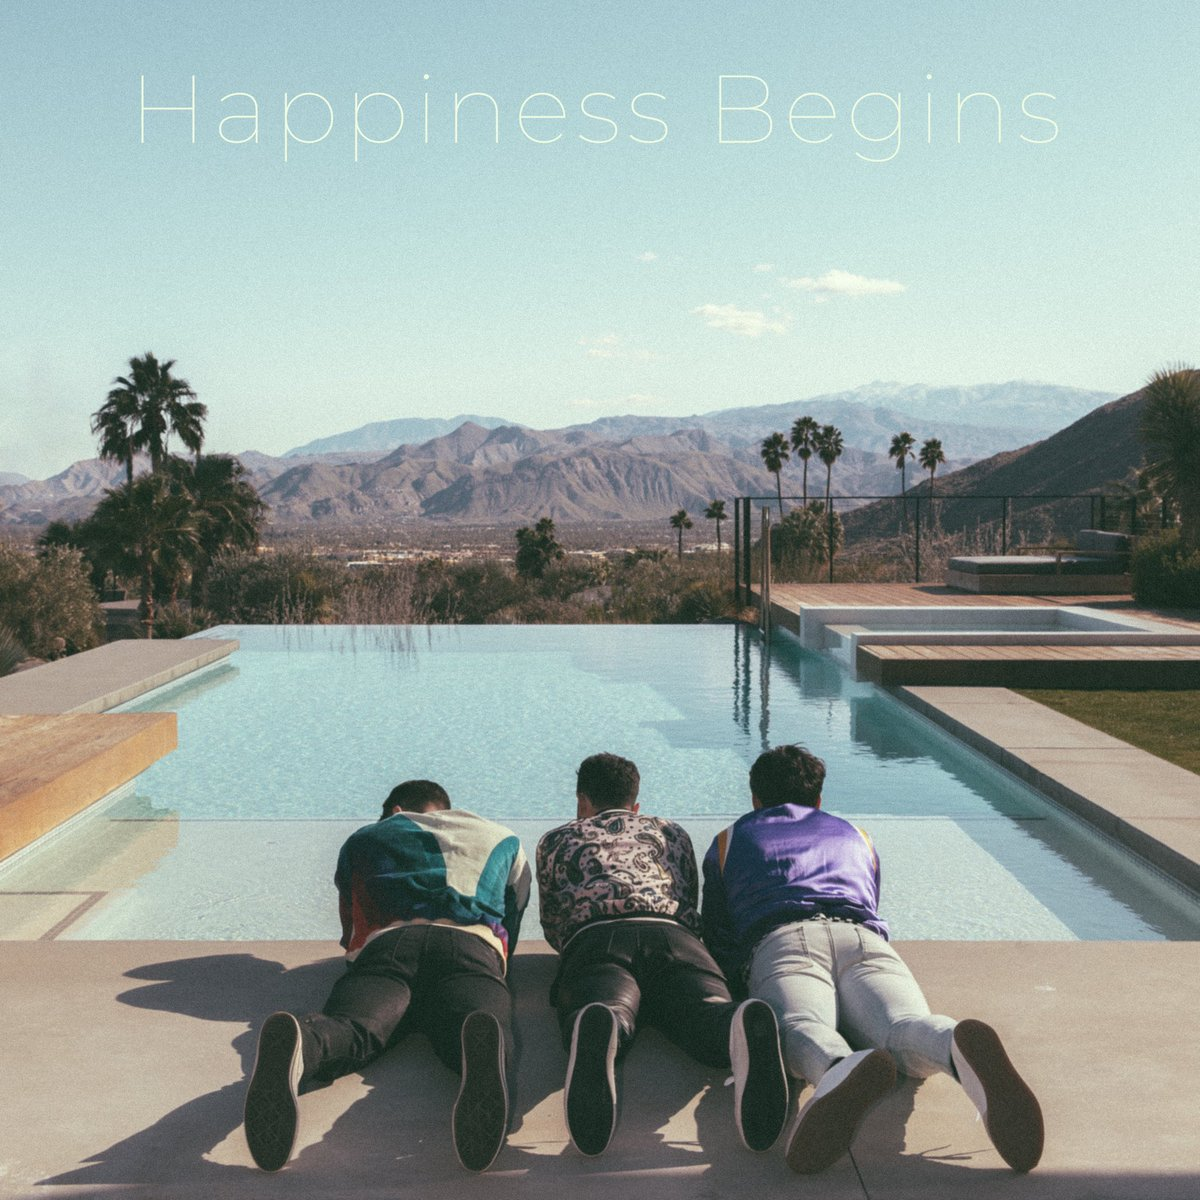 """New Jonas Brothers Album Cover for """"Happiness Begins"""" Sparks Fan Trolling"""